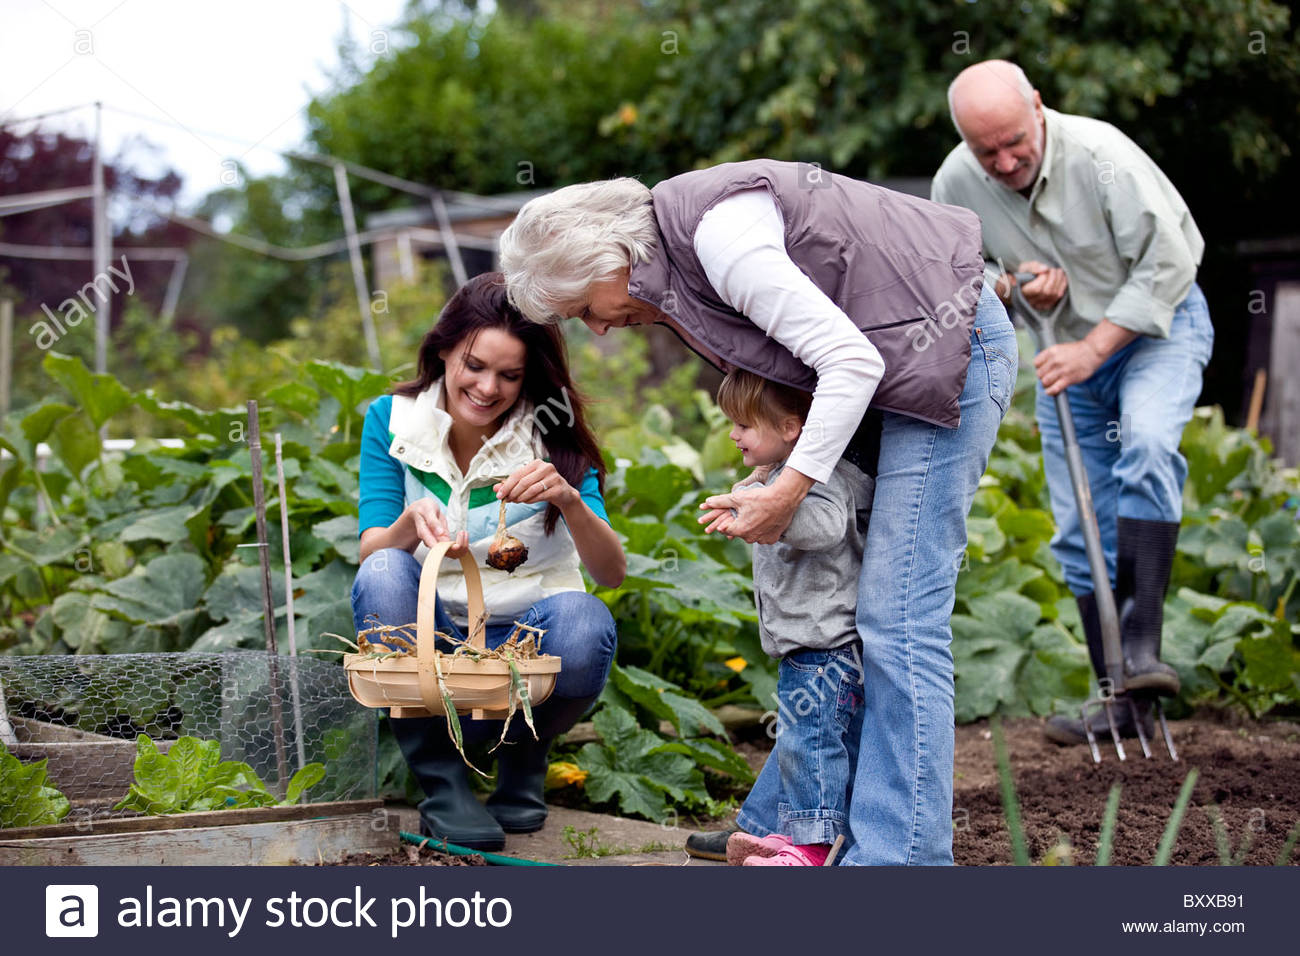 A family working on an allotment together - Stock Image